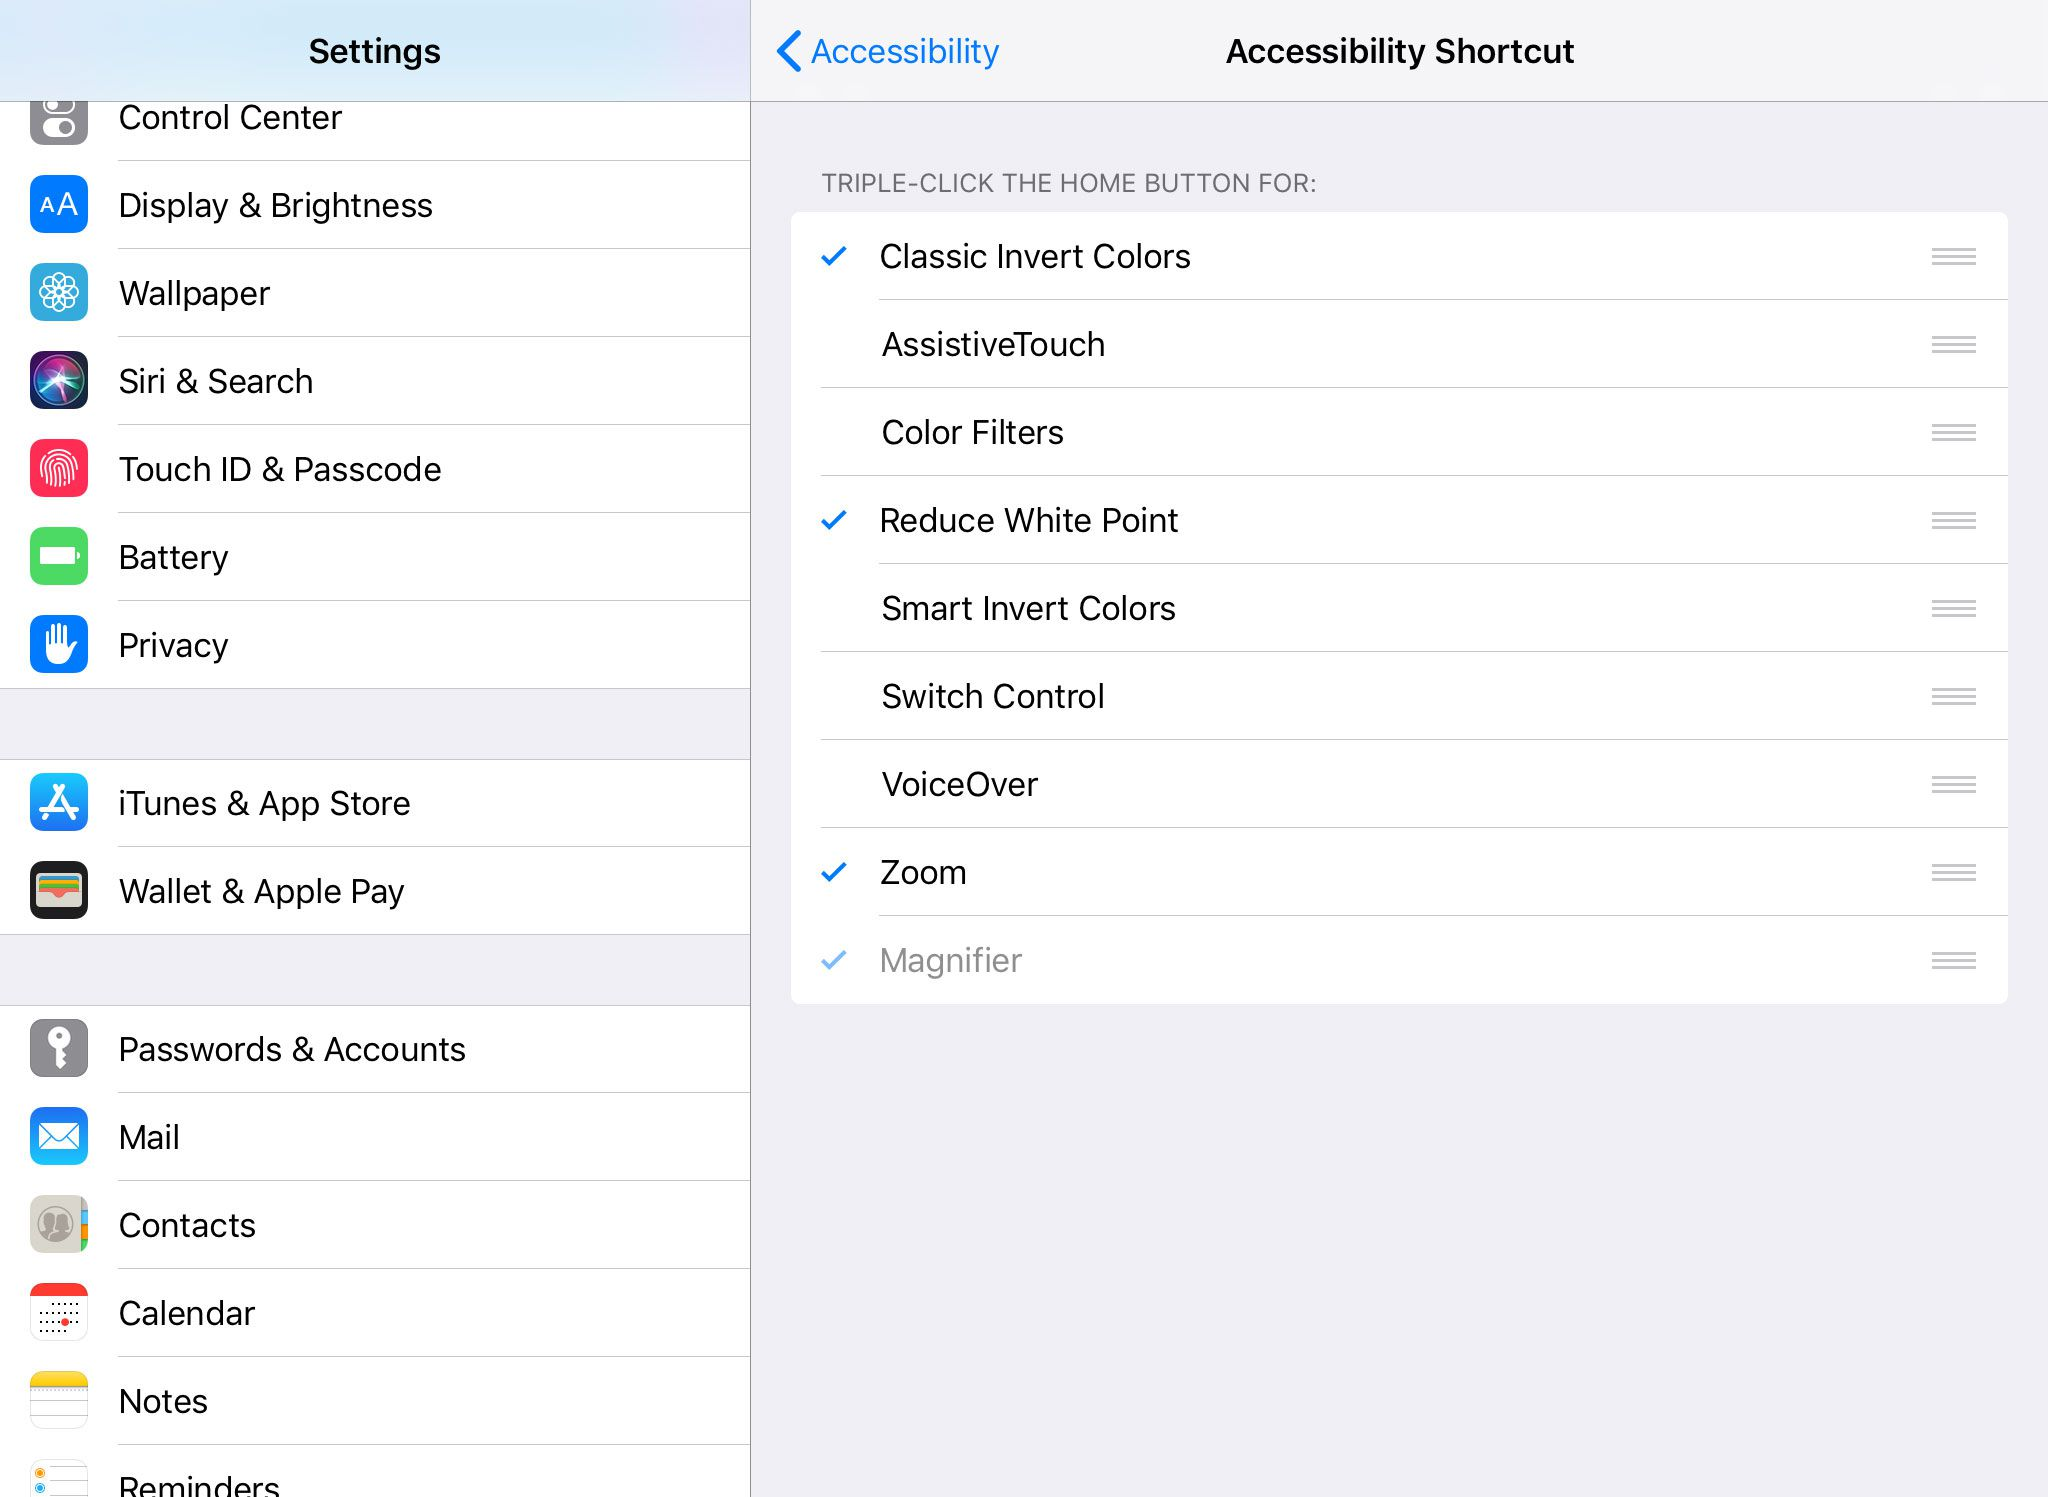 The Accessibility Shortcut options on an iPad